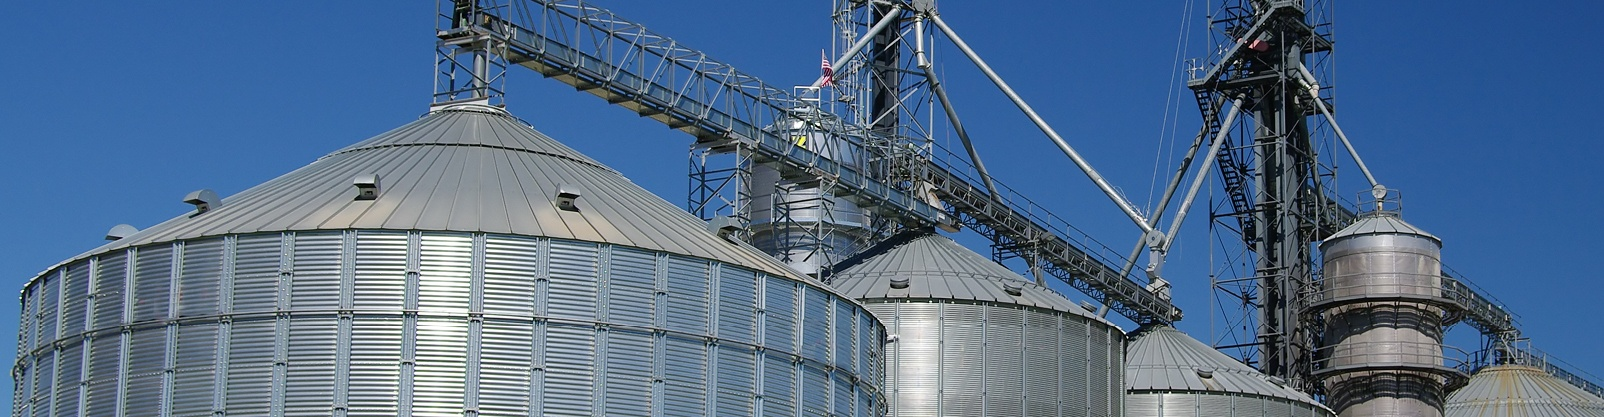 Getting the Right Grain Dryer Shed For Your Farm